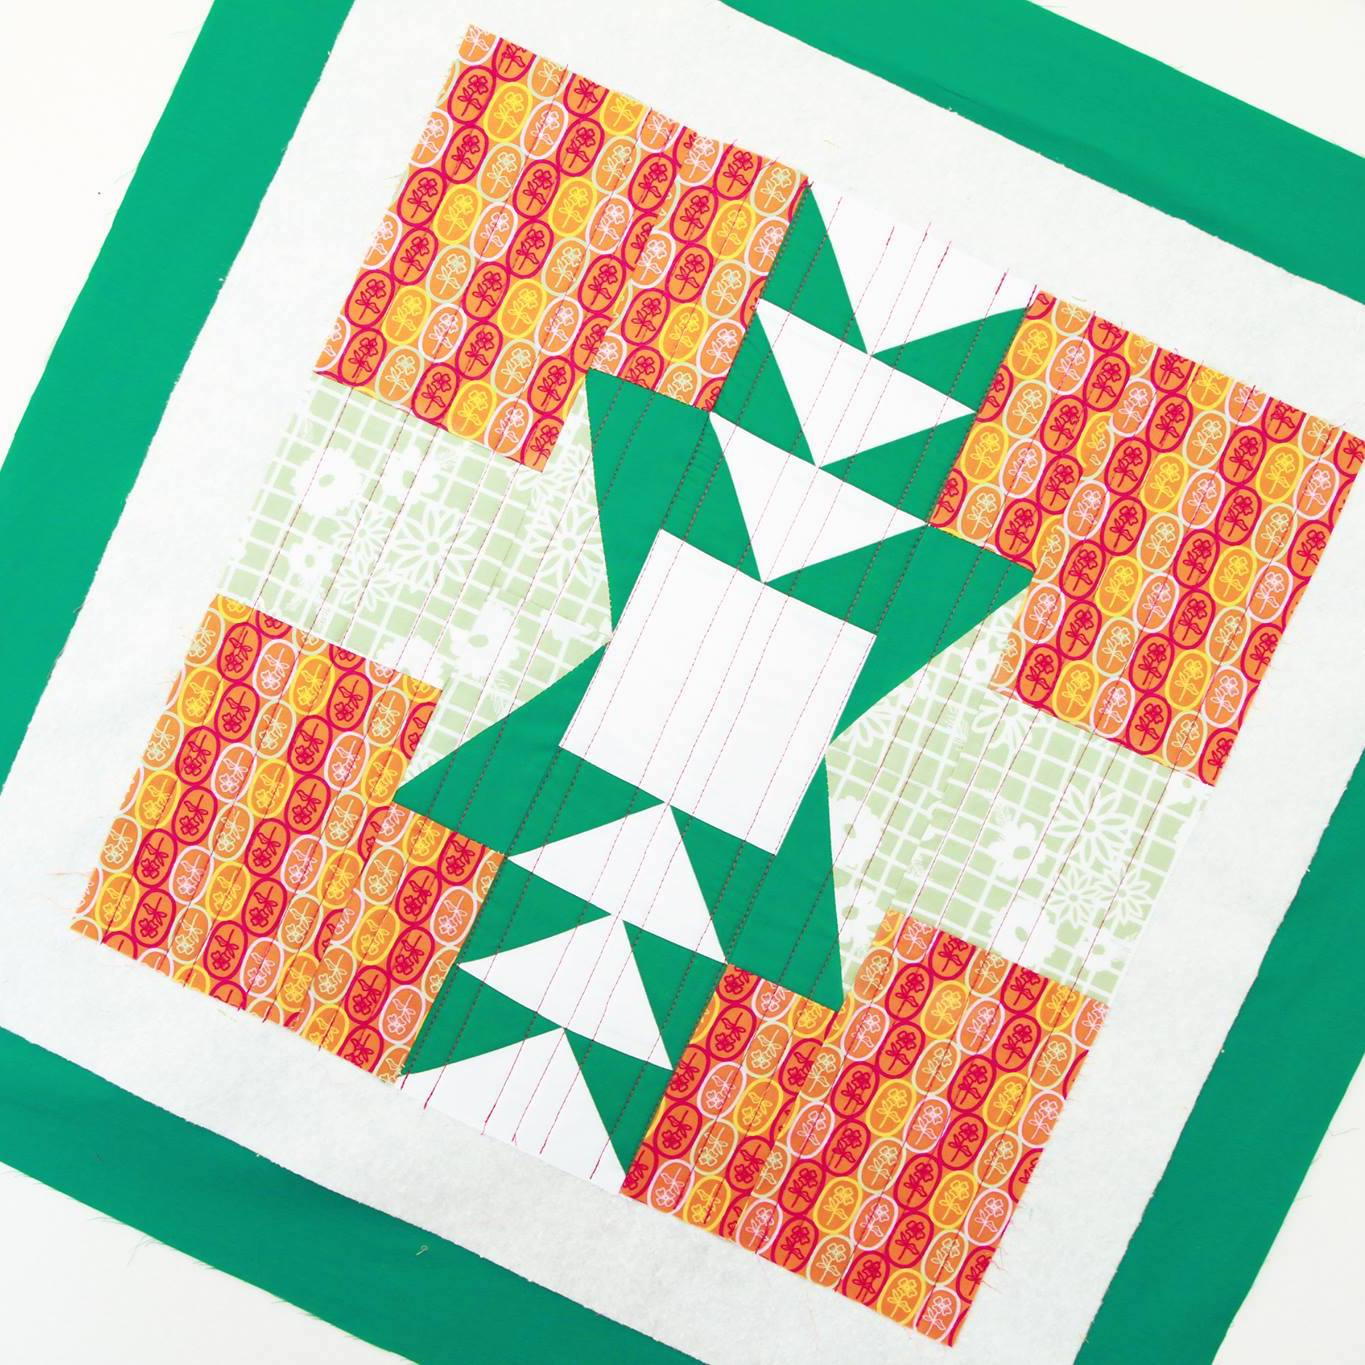 Fiesta Fun fabric collection designed by Dana Willard for Art Gallery Fabrics | Florita Party and Papel Picado Menta prints | FREE Imperial Token quilting pattern